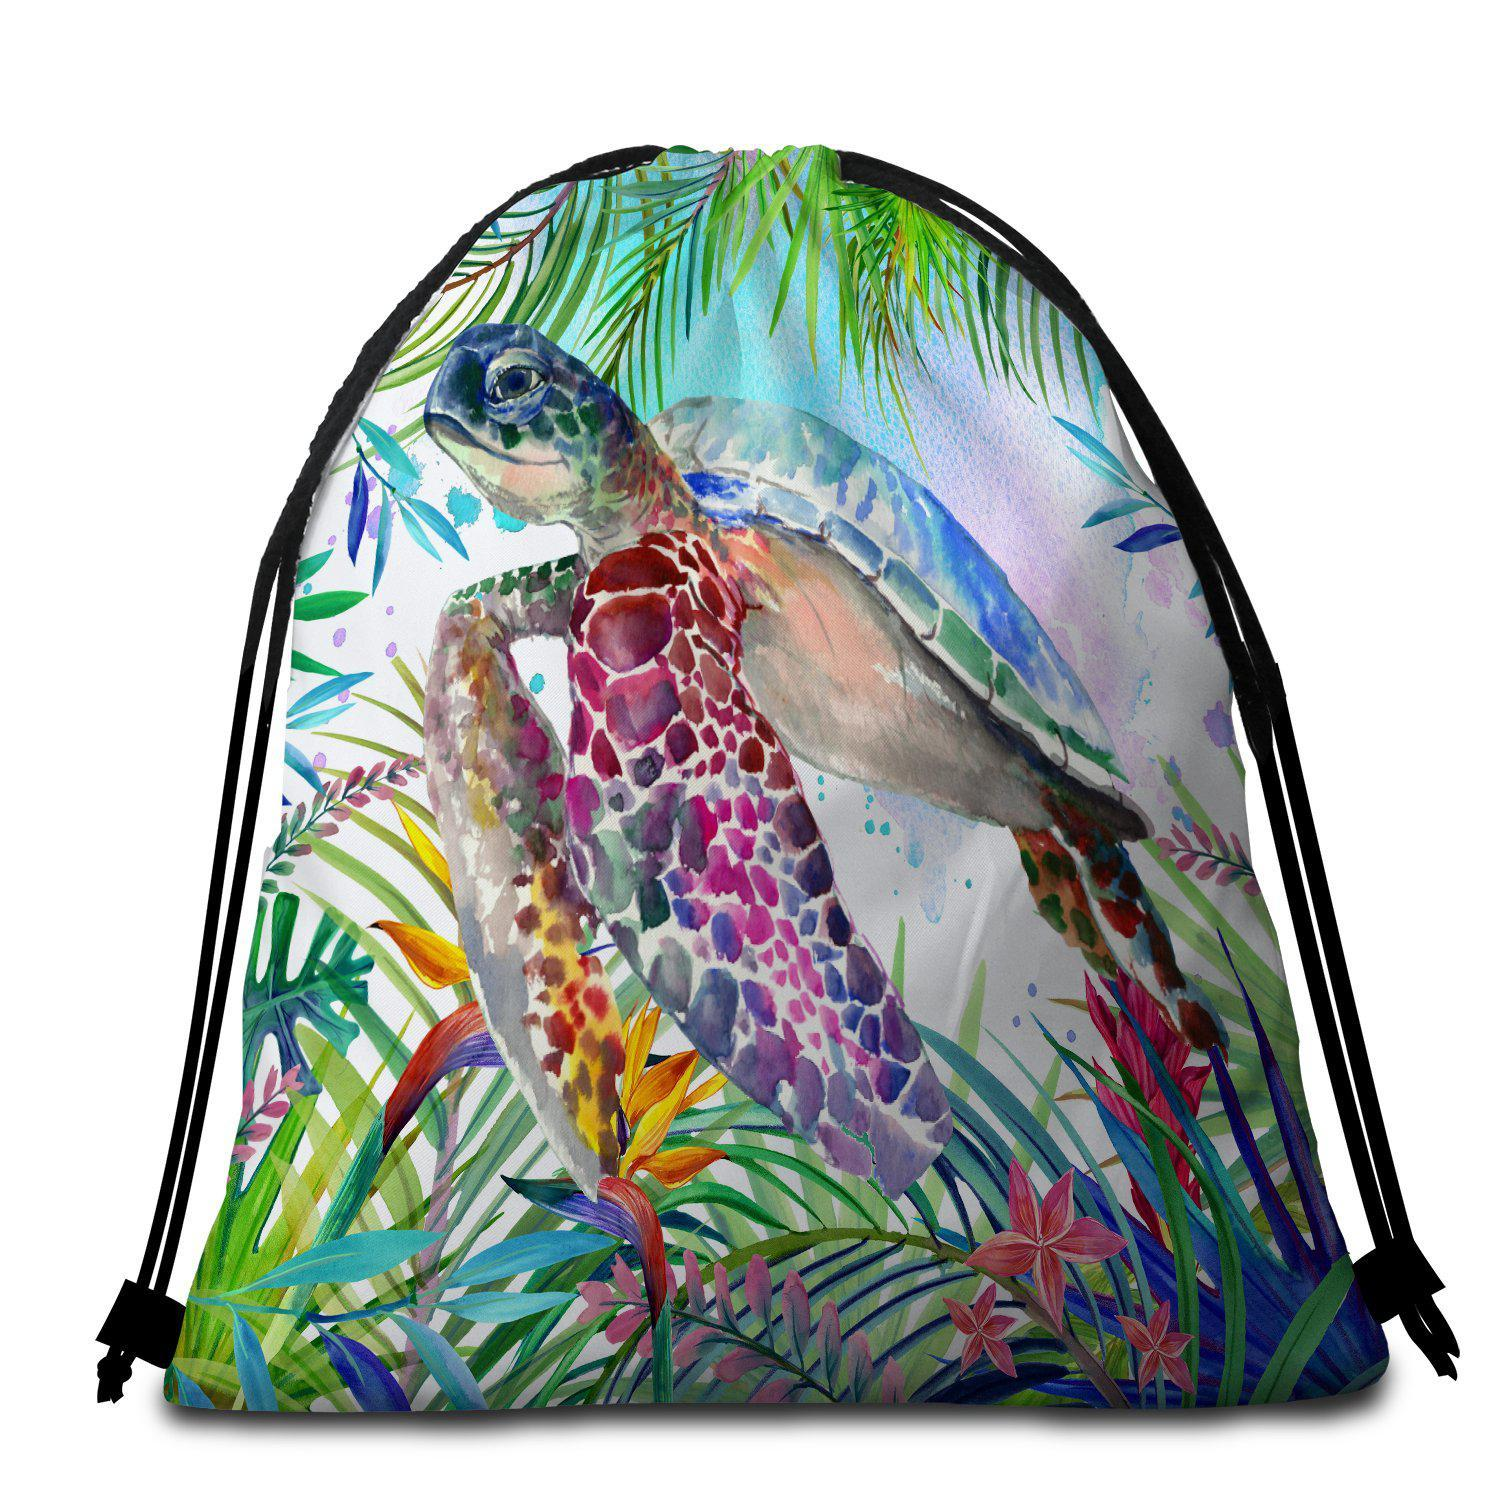 The Original Tropical Sea Turtle Drawstring Bag